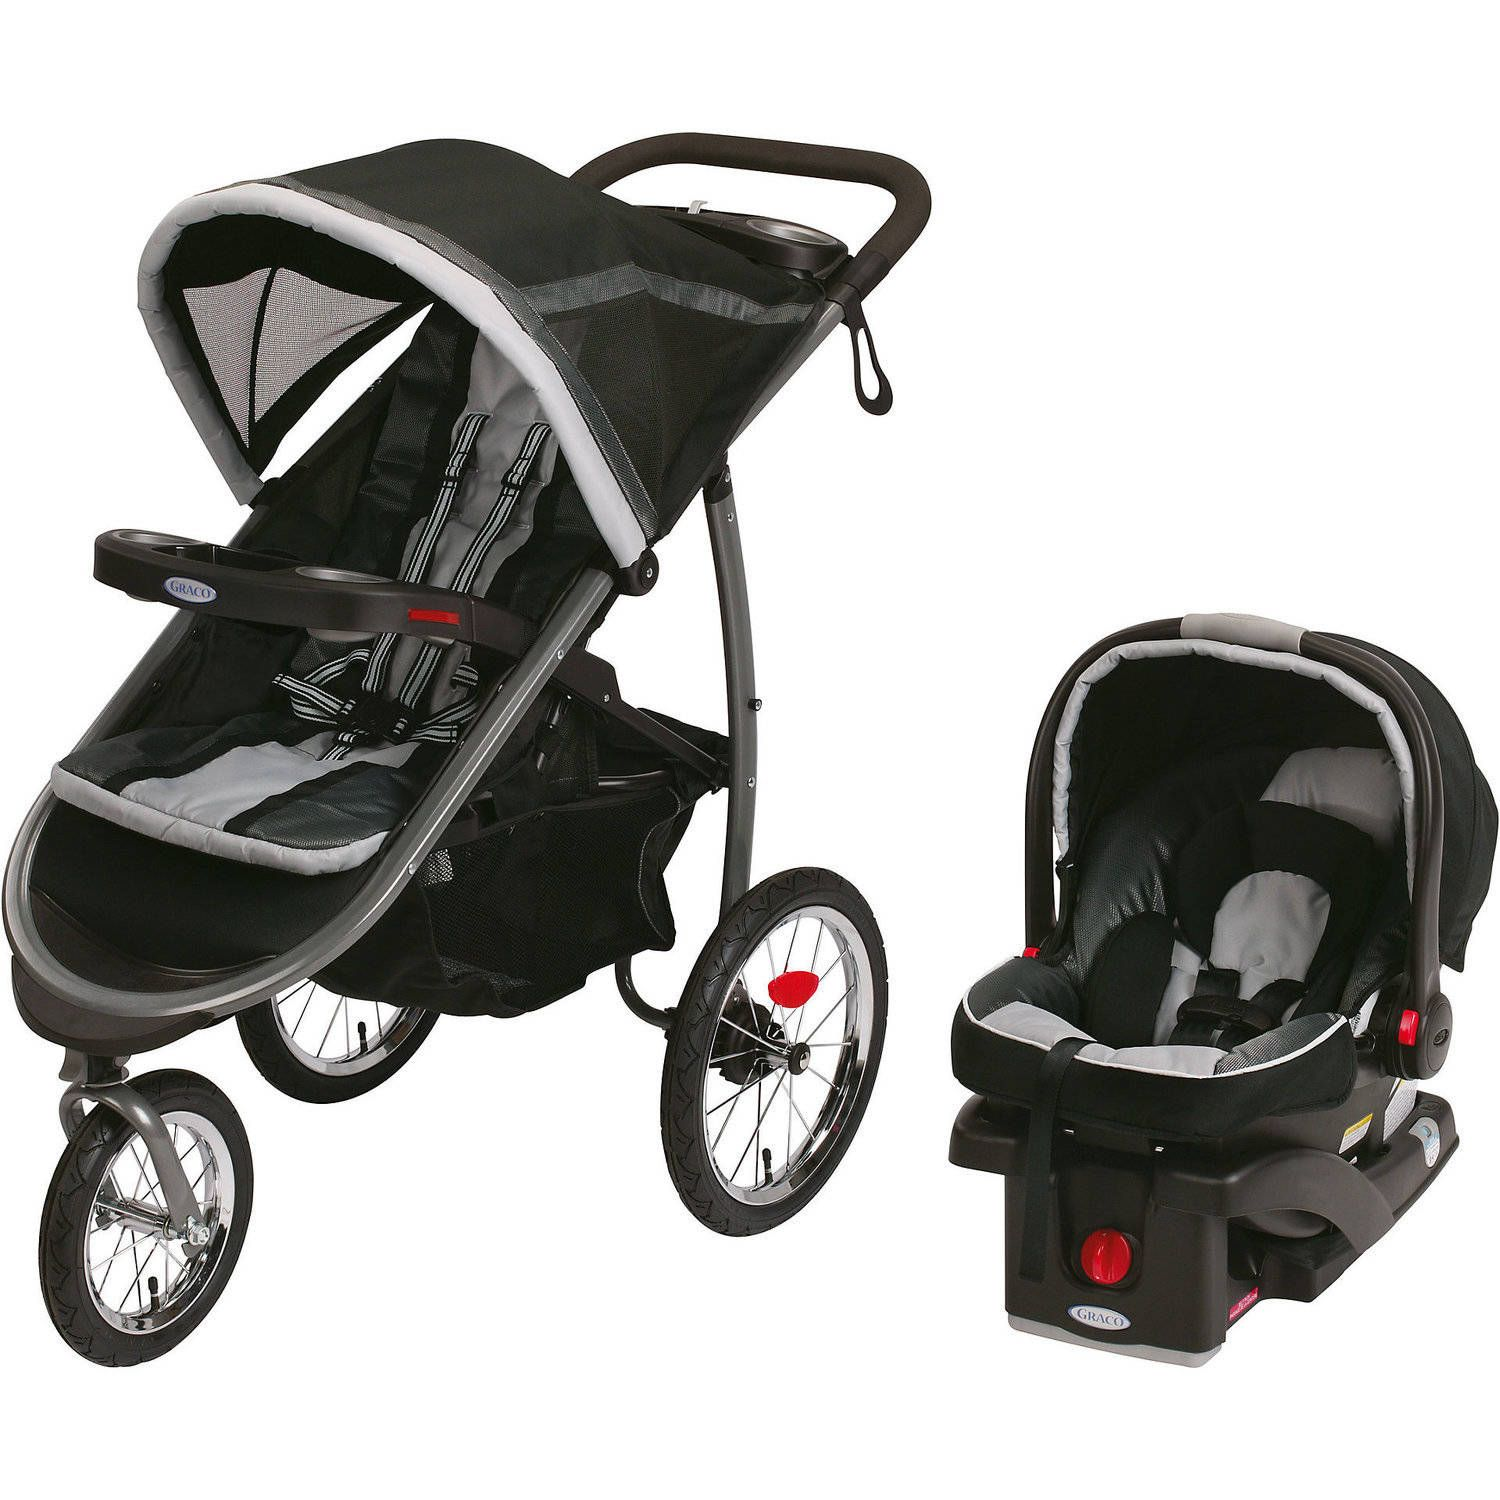 Best Jogging Stroller For Your Family Cutting Edge Jogging Strollers That Won t Break